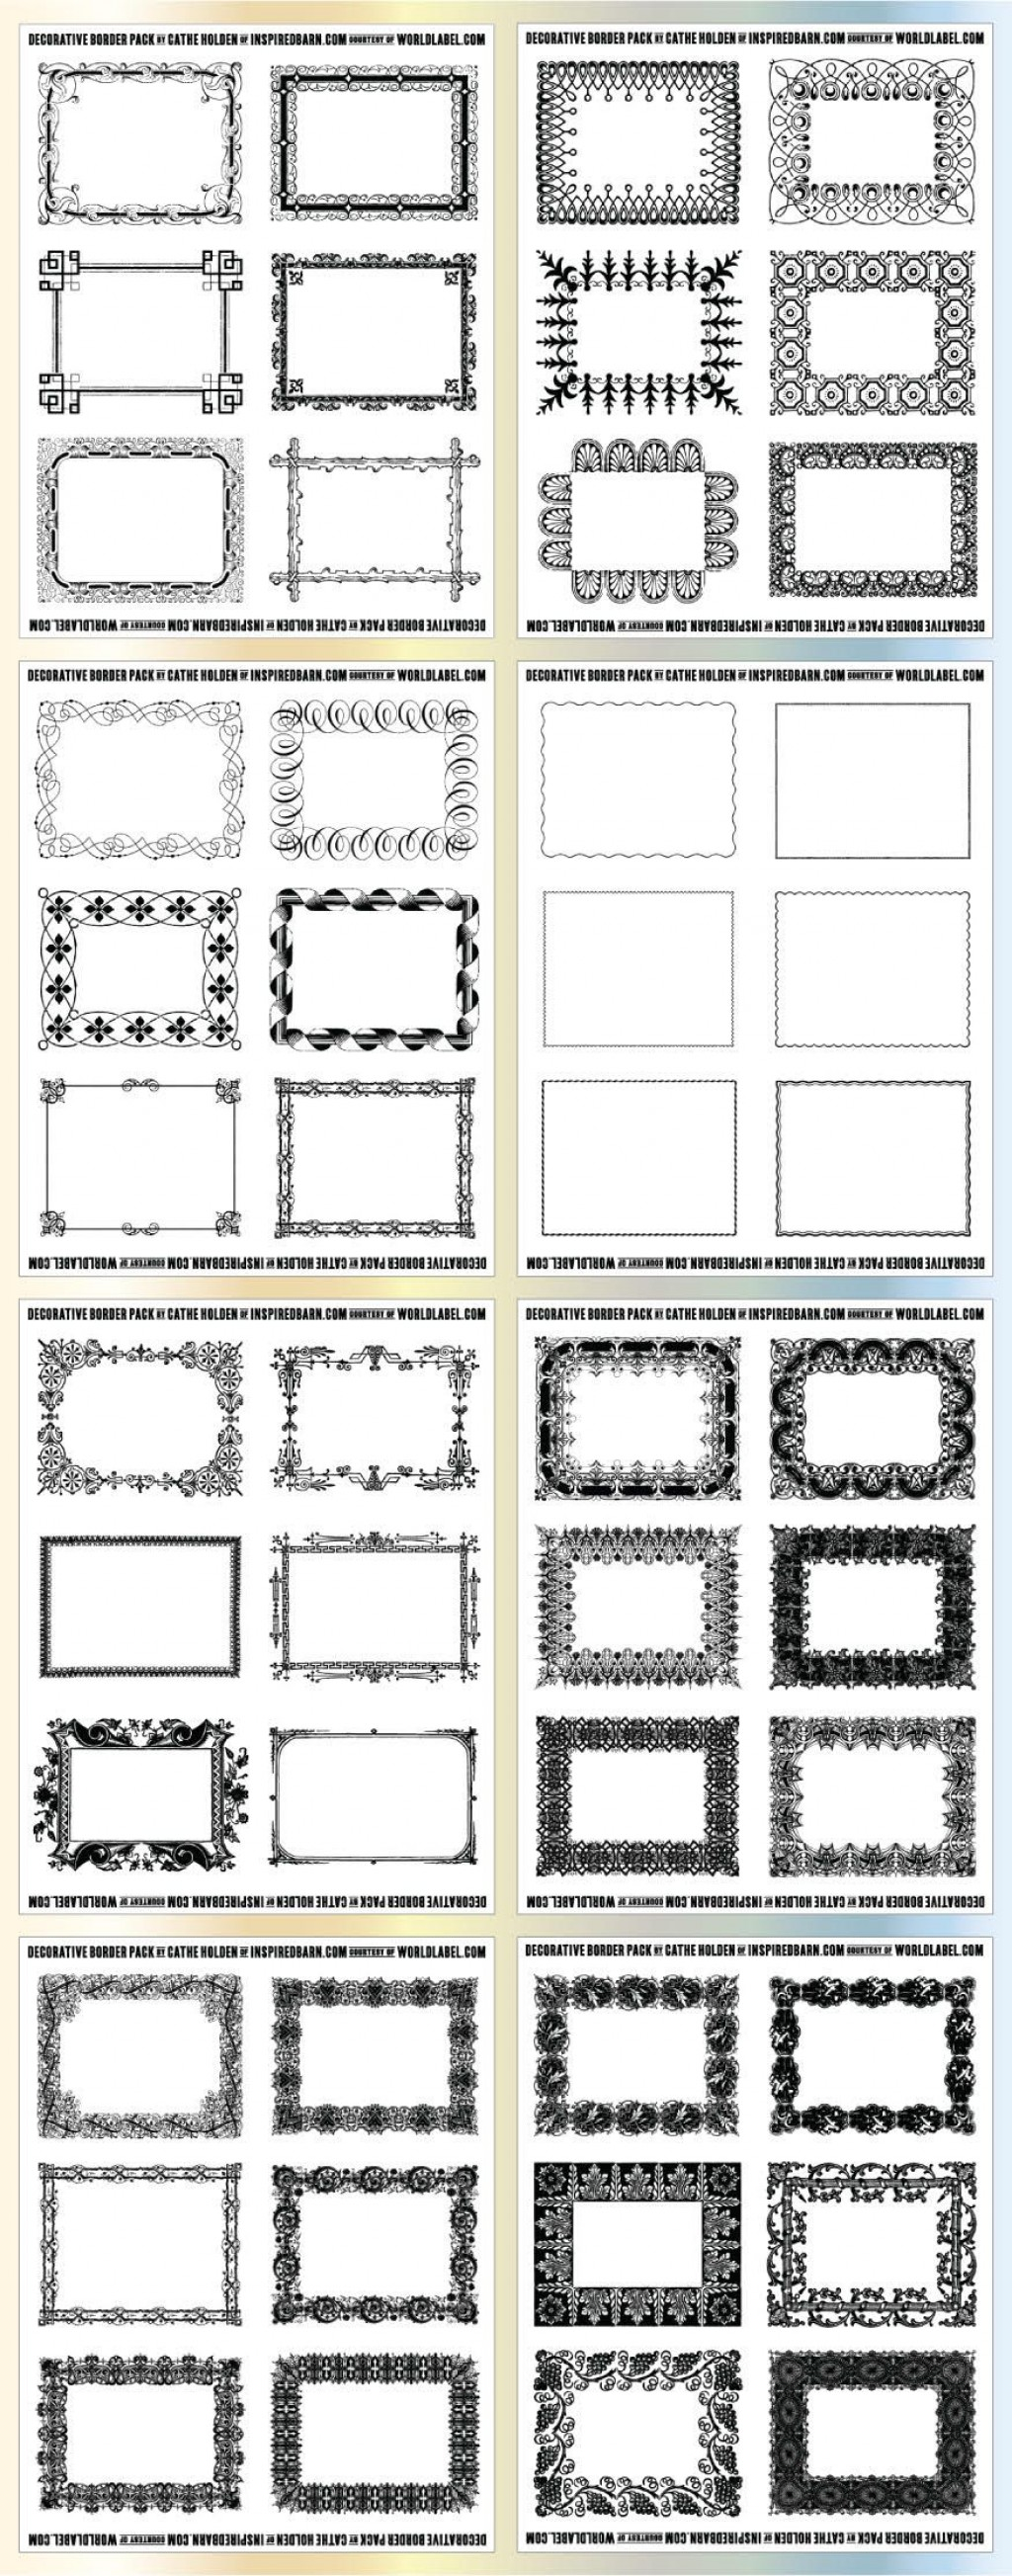 005 Incredible Free Label Maker Template For Mac Highest Clarity Large